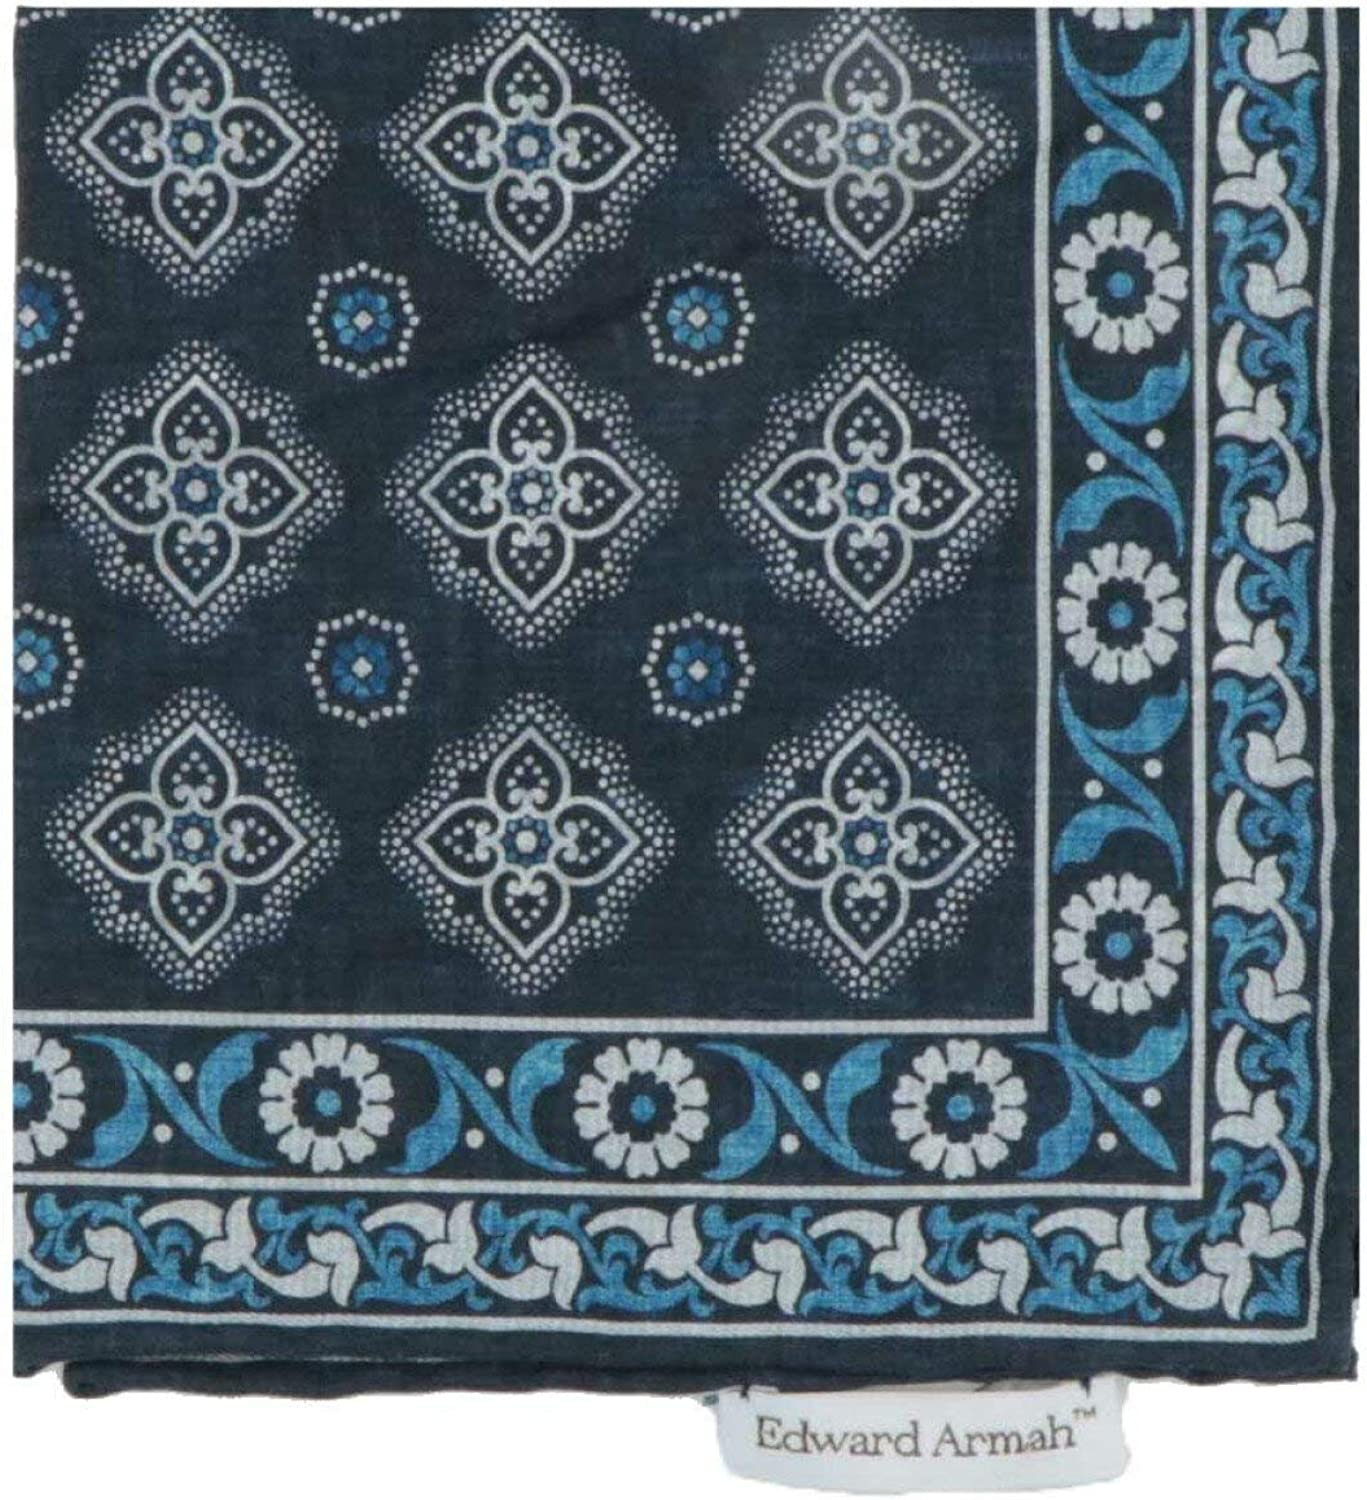 Edward Armah Men's Double Sided Paisley and Floral Medallion Pocket S Square